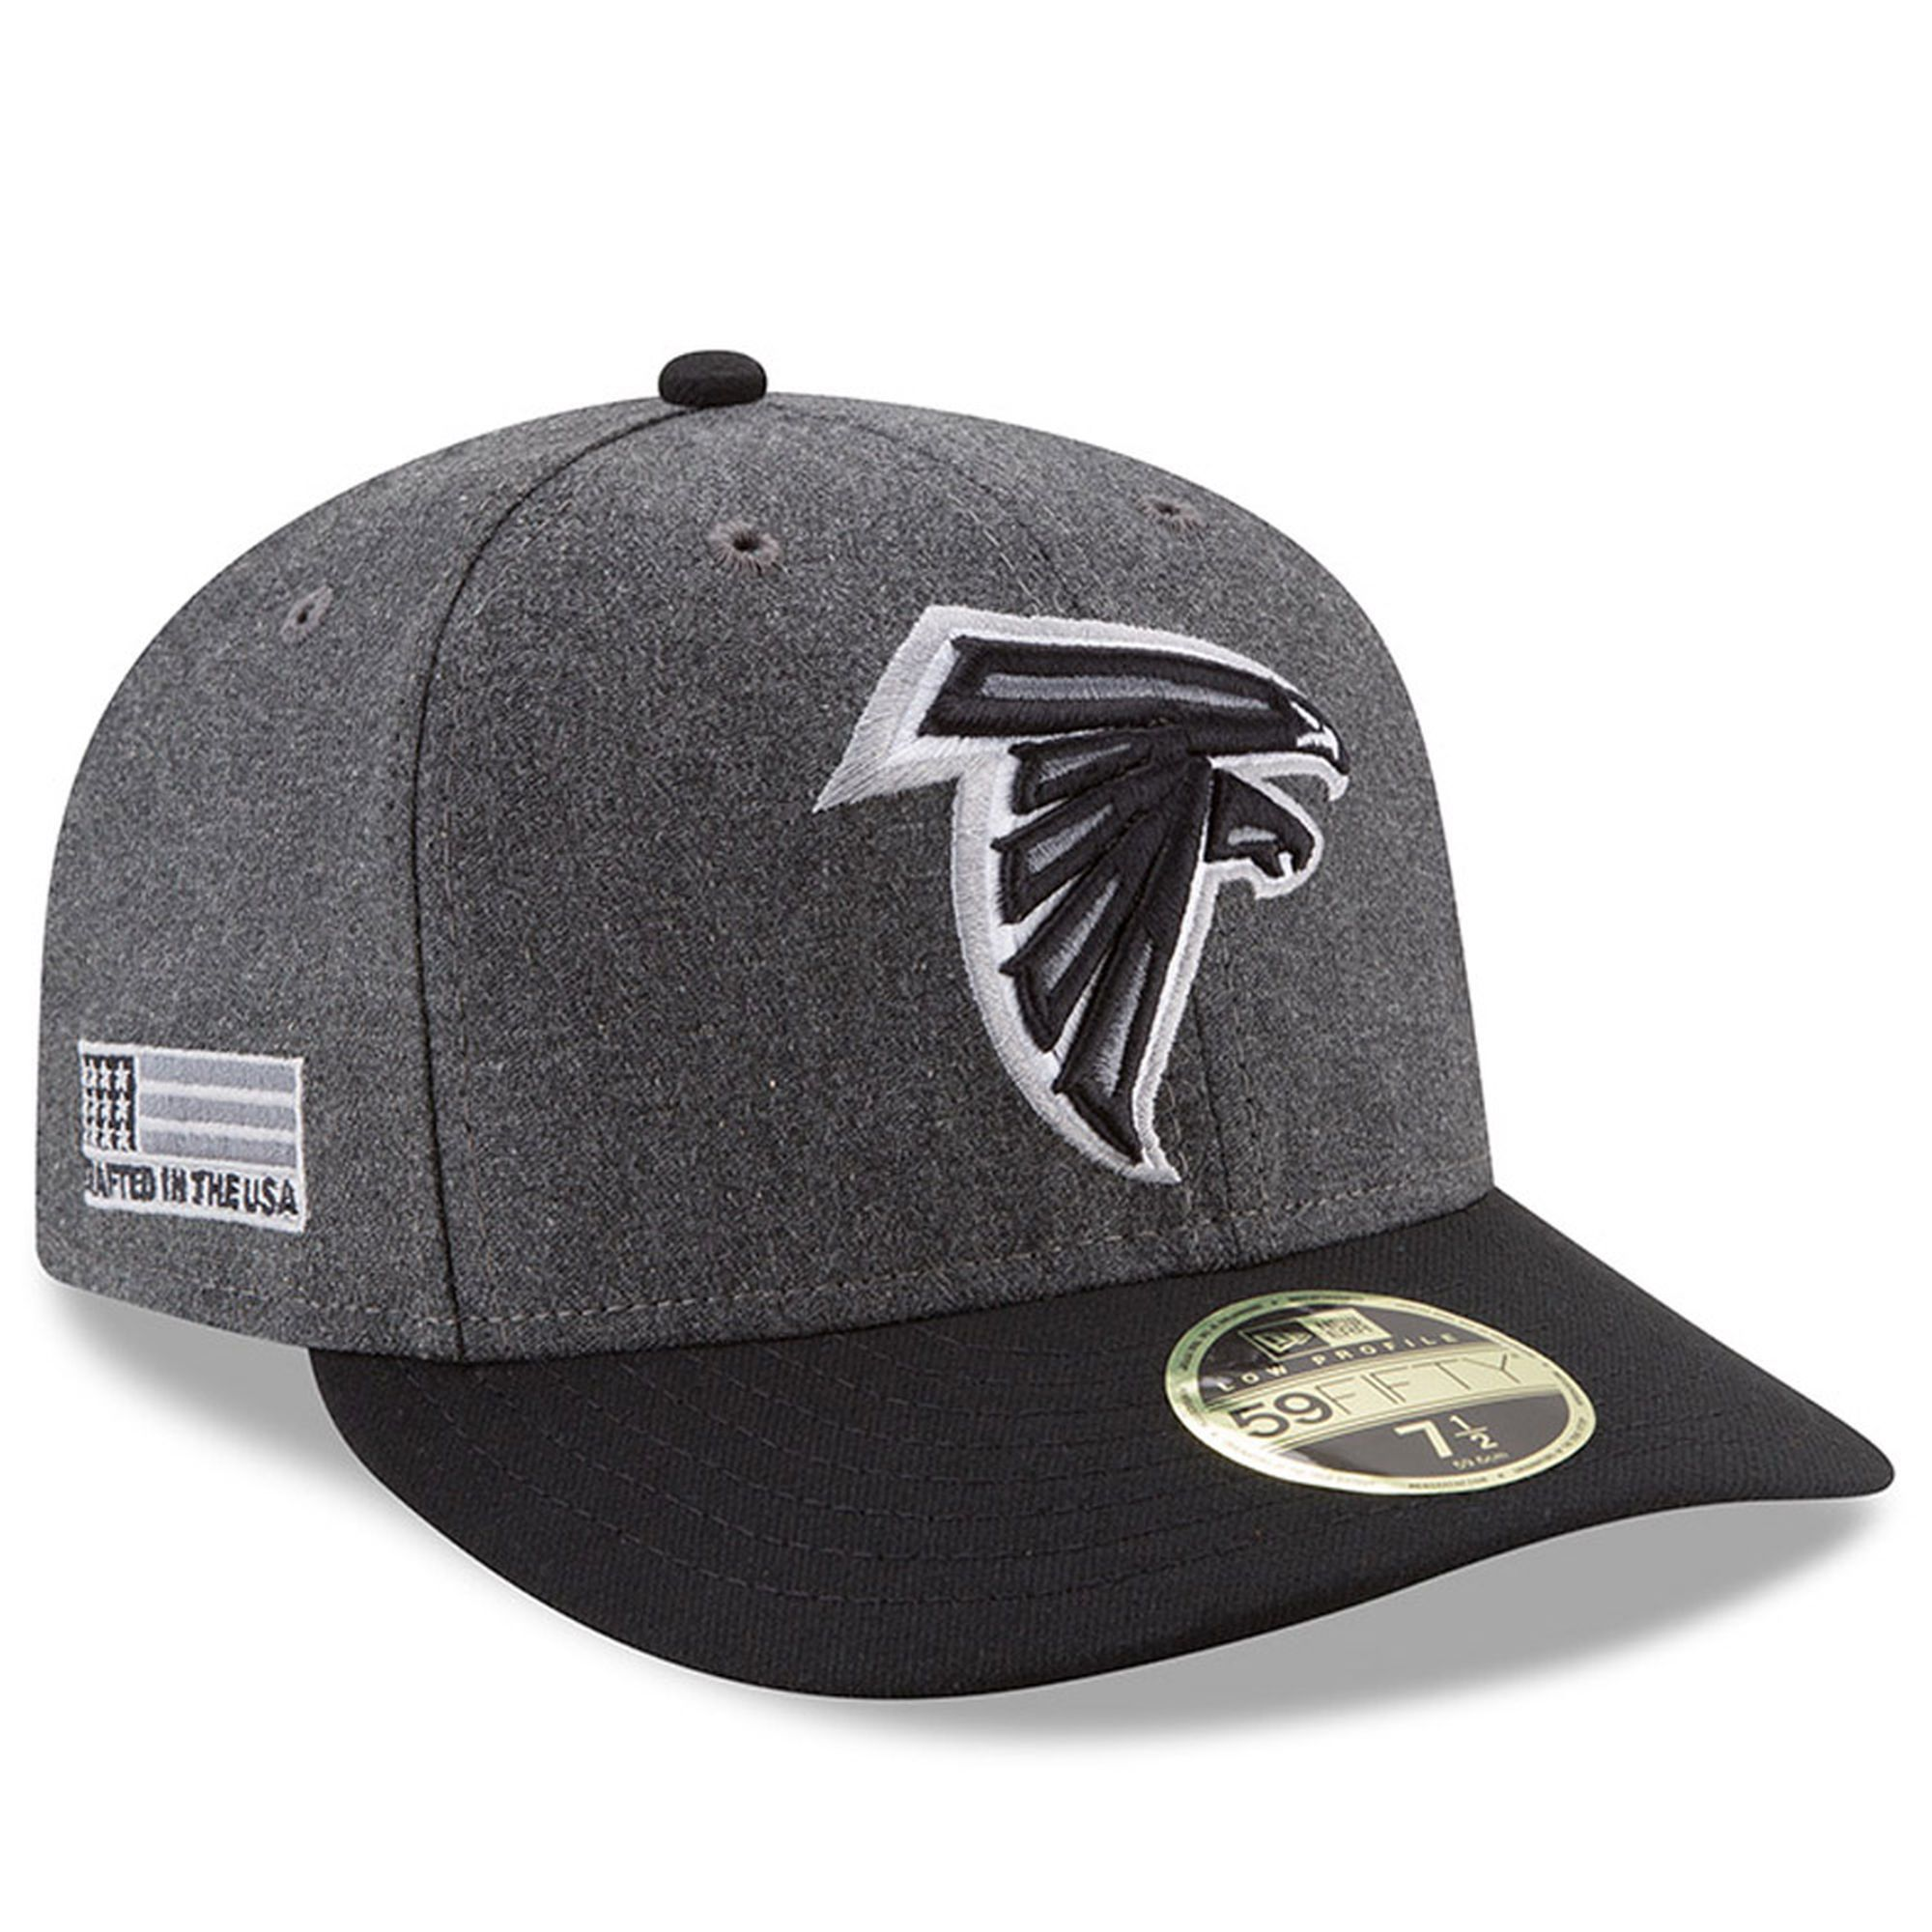 New Era Atlanta Falcons Heather Gray/Black Crafted in the